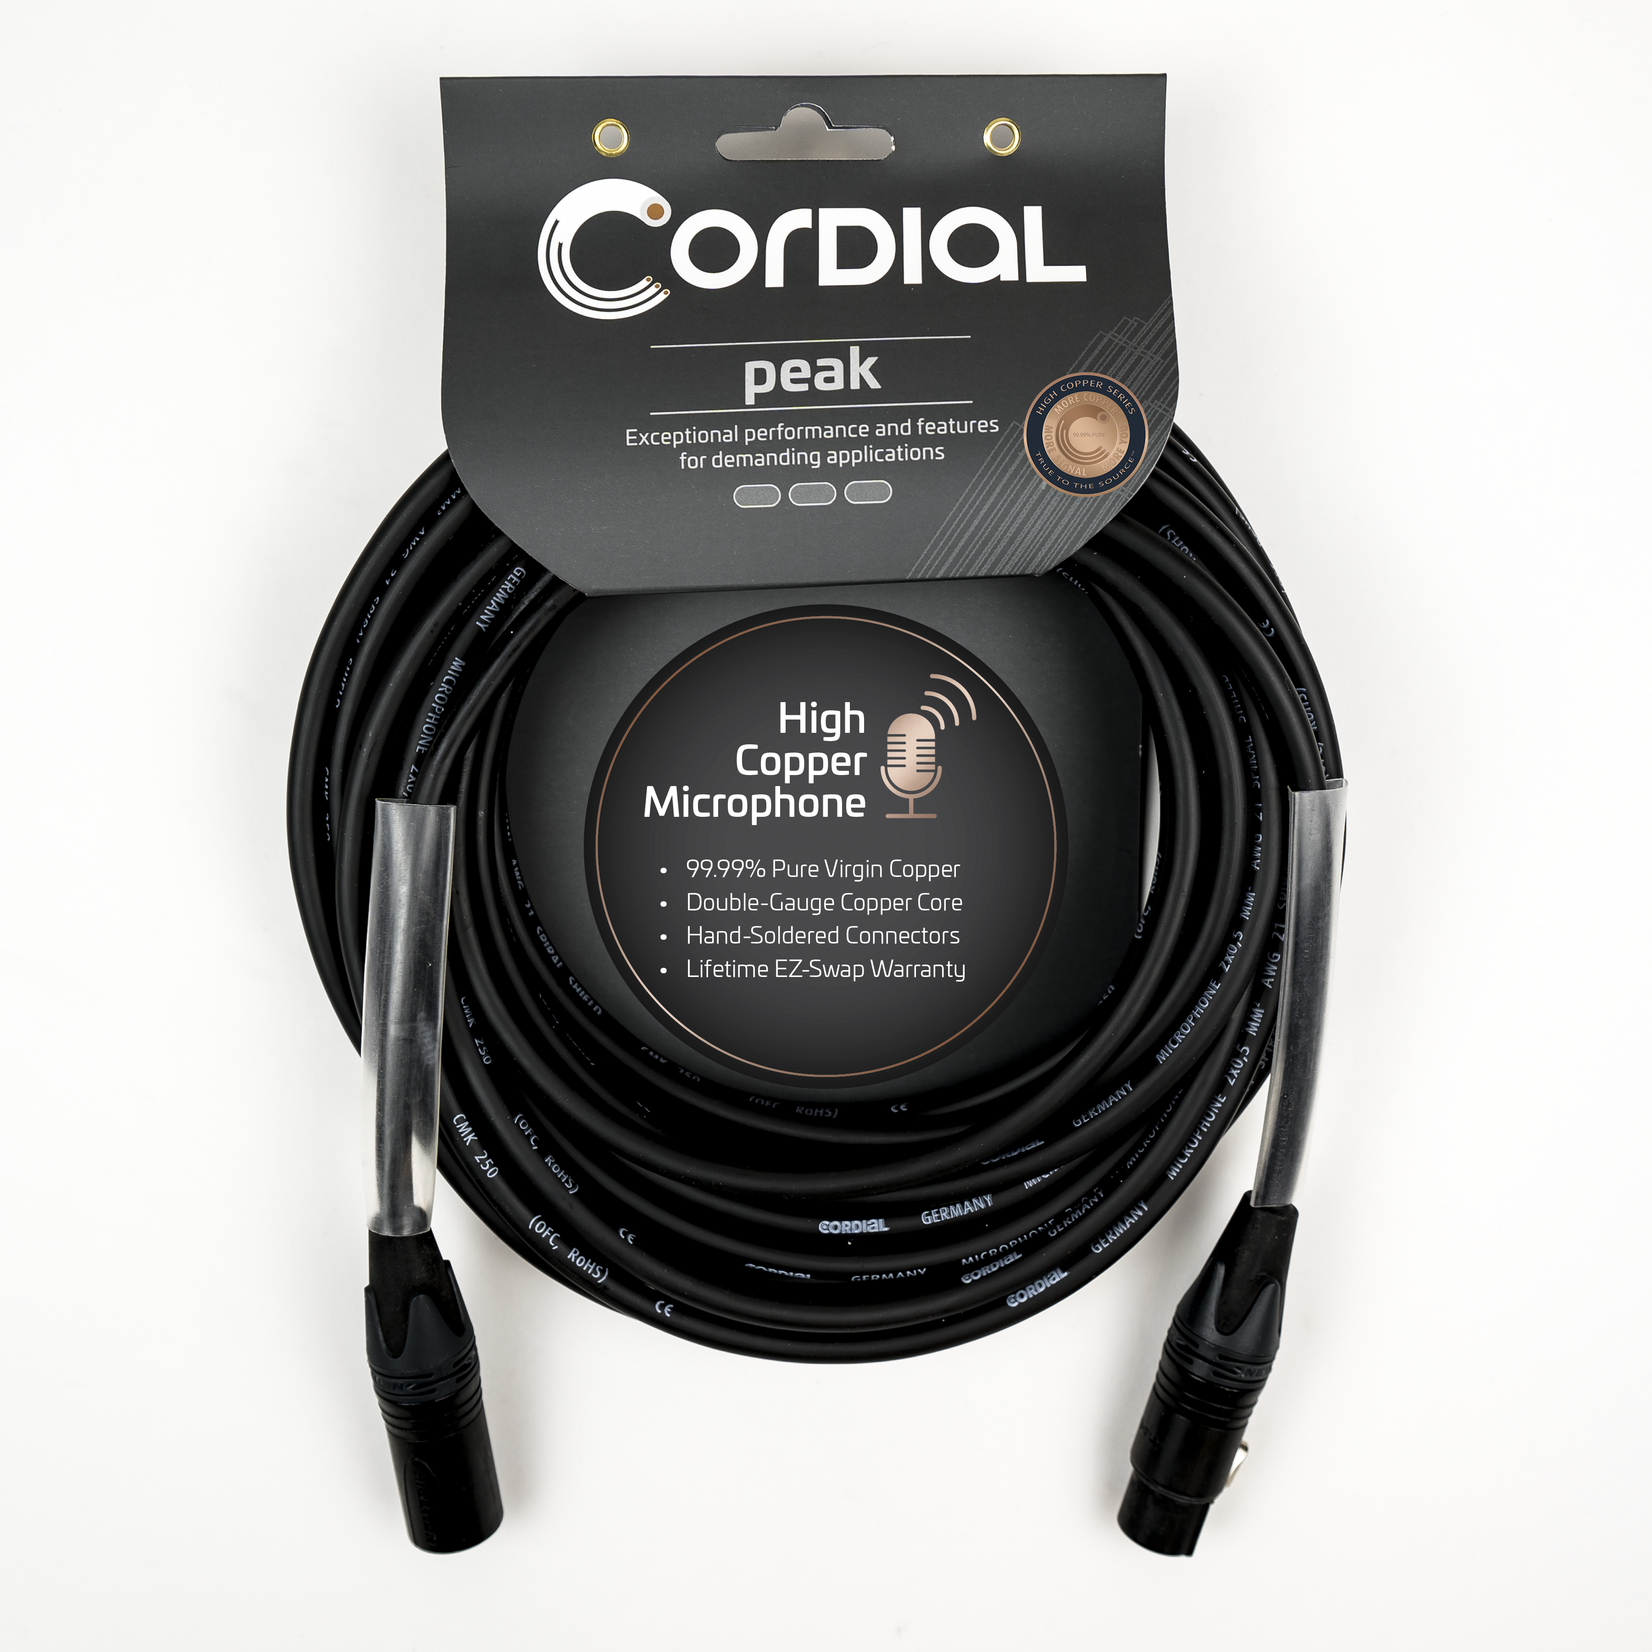 Cordial Cables Cordial Cables Premium High-Copper Studio Microphone Cable with Gold-Plated Contacts, Peak Series - XLR to XLR Plugs, 25-Foot Cable